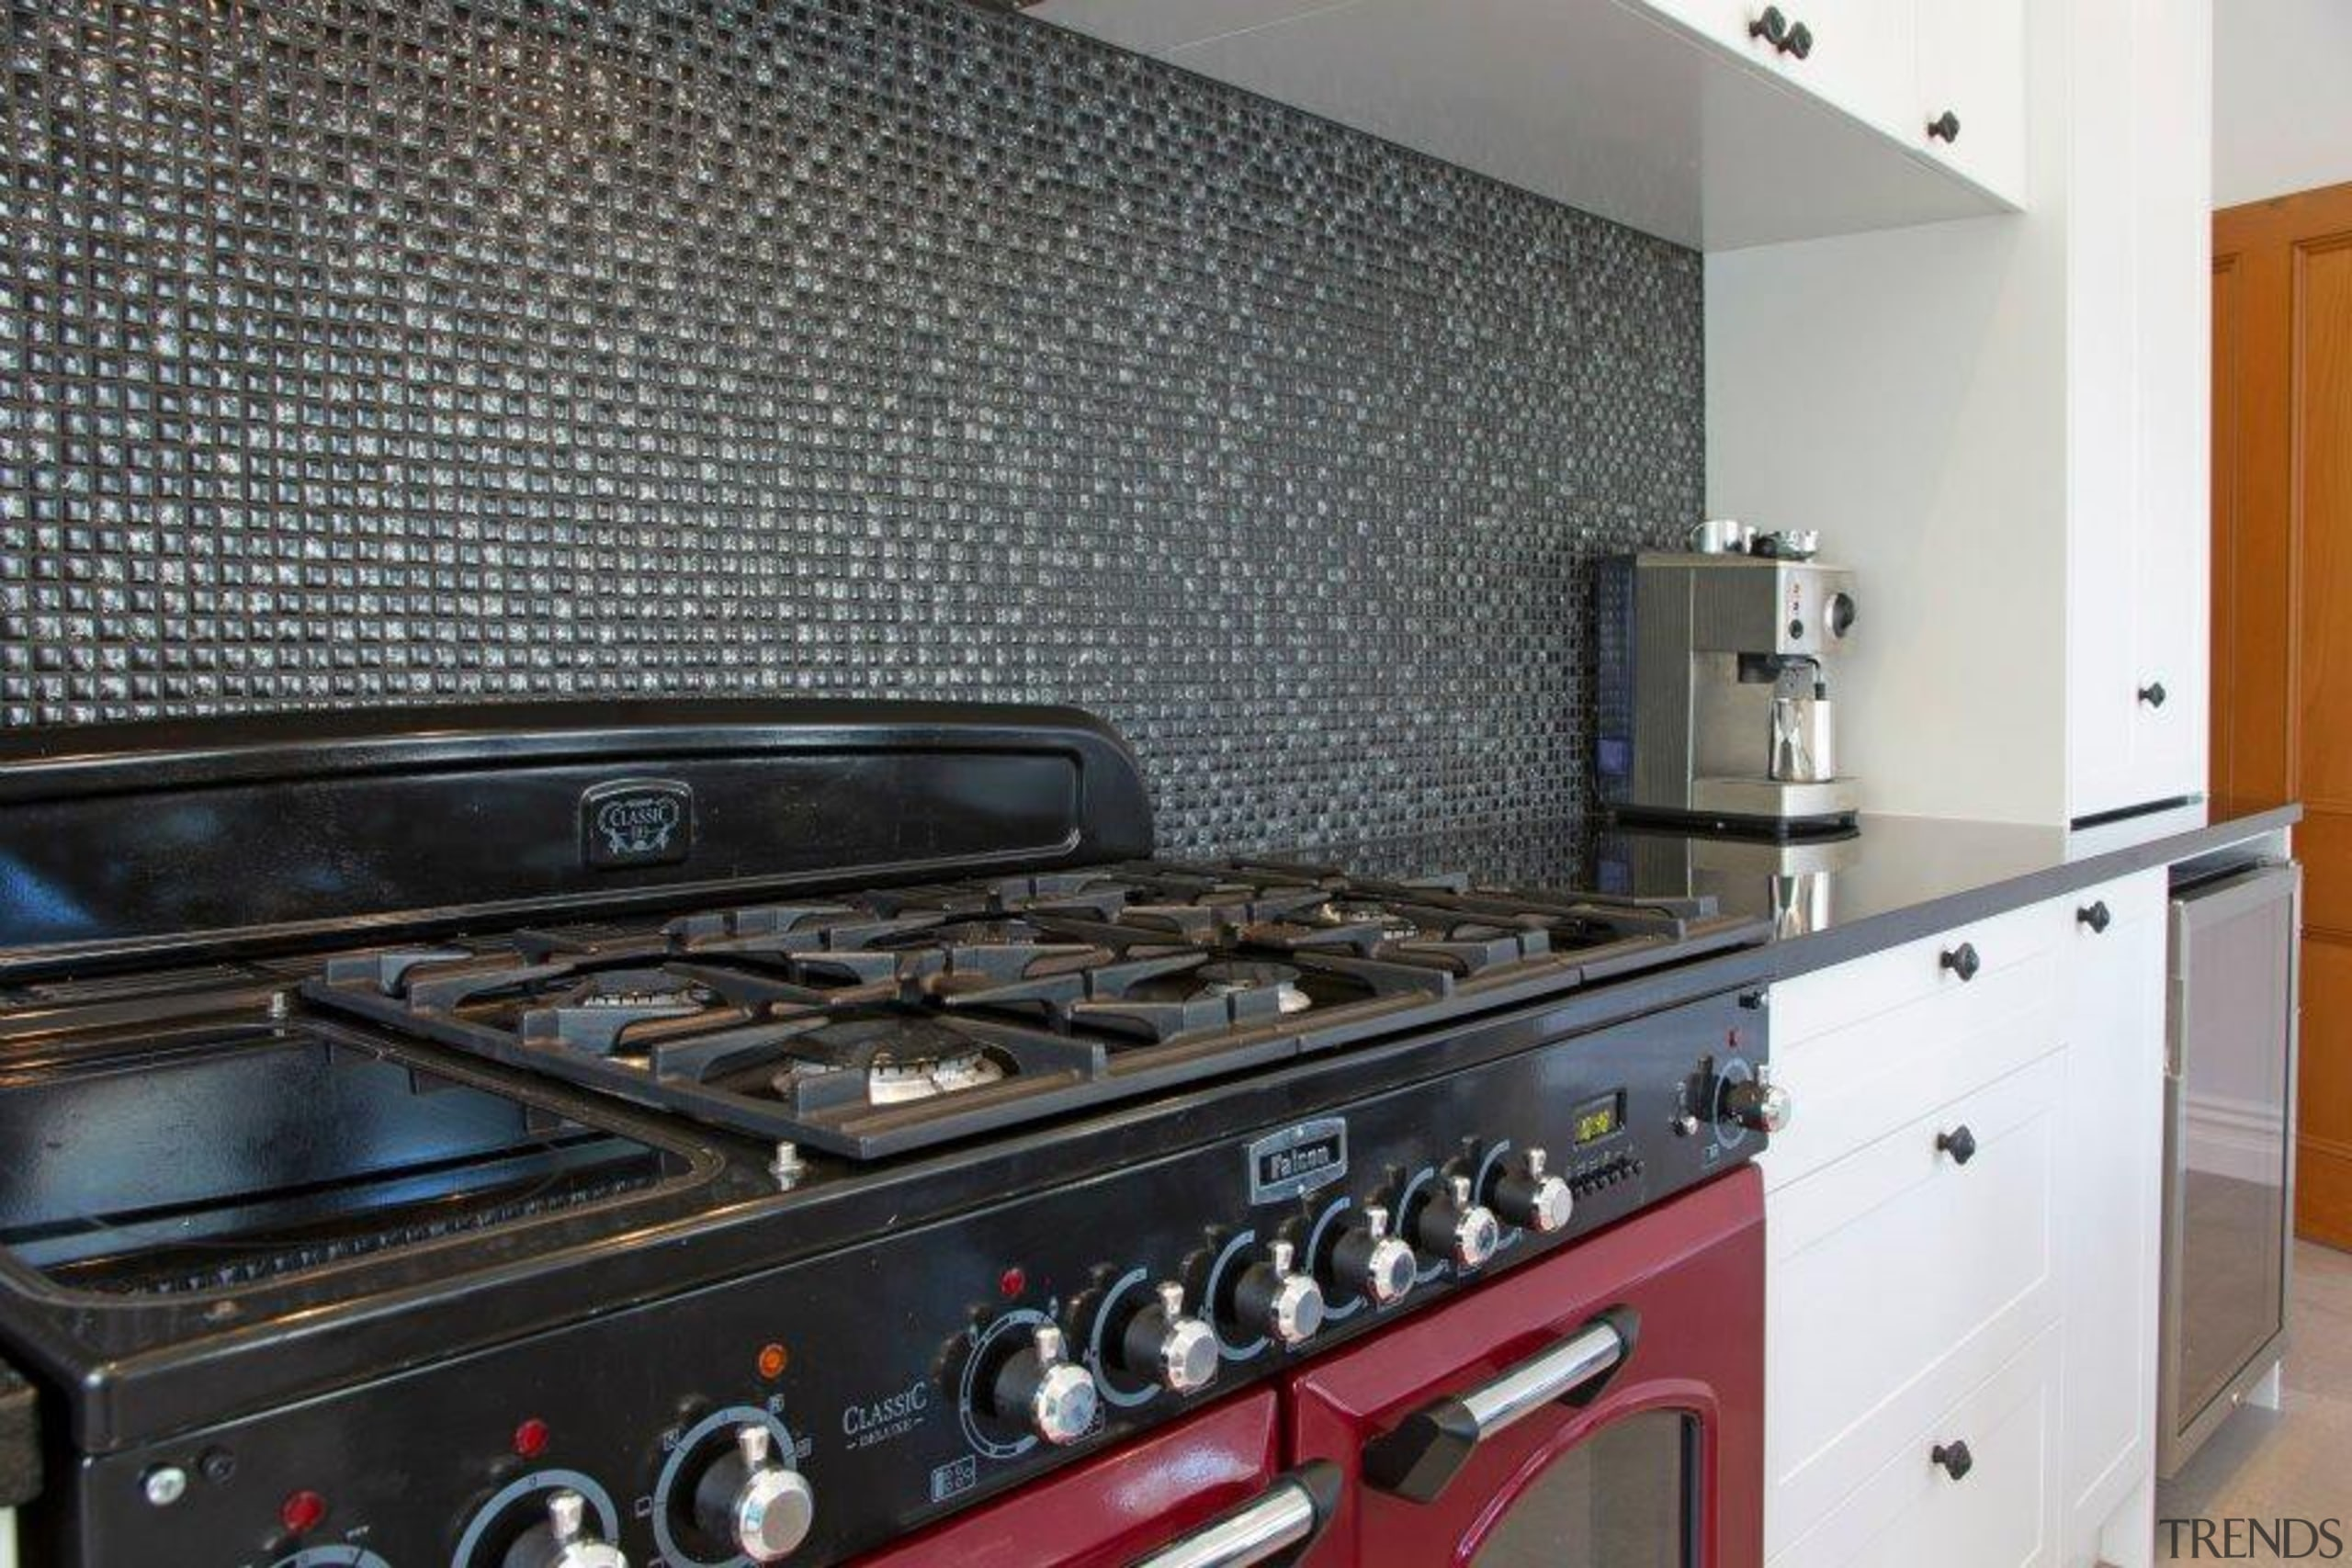 falcon range, glass mosaic tile splashback - Voyles countertop, flooring, home appliance, kitchen, kitchen appliance, kitchen stove, major appliance, black, gray